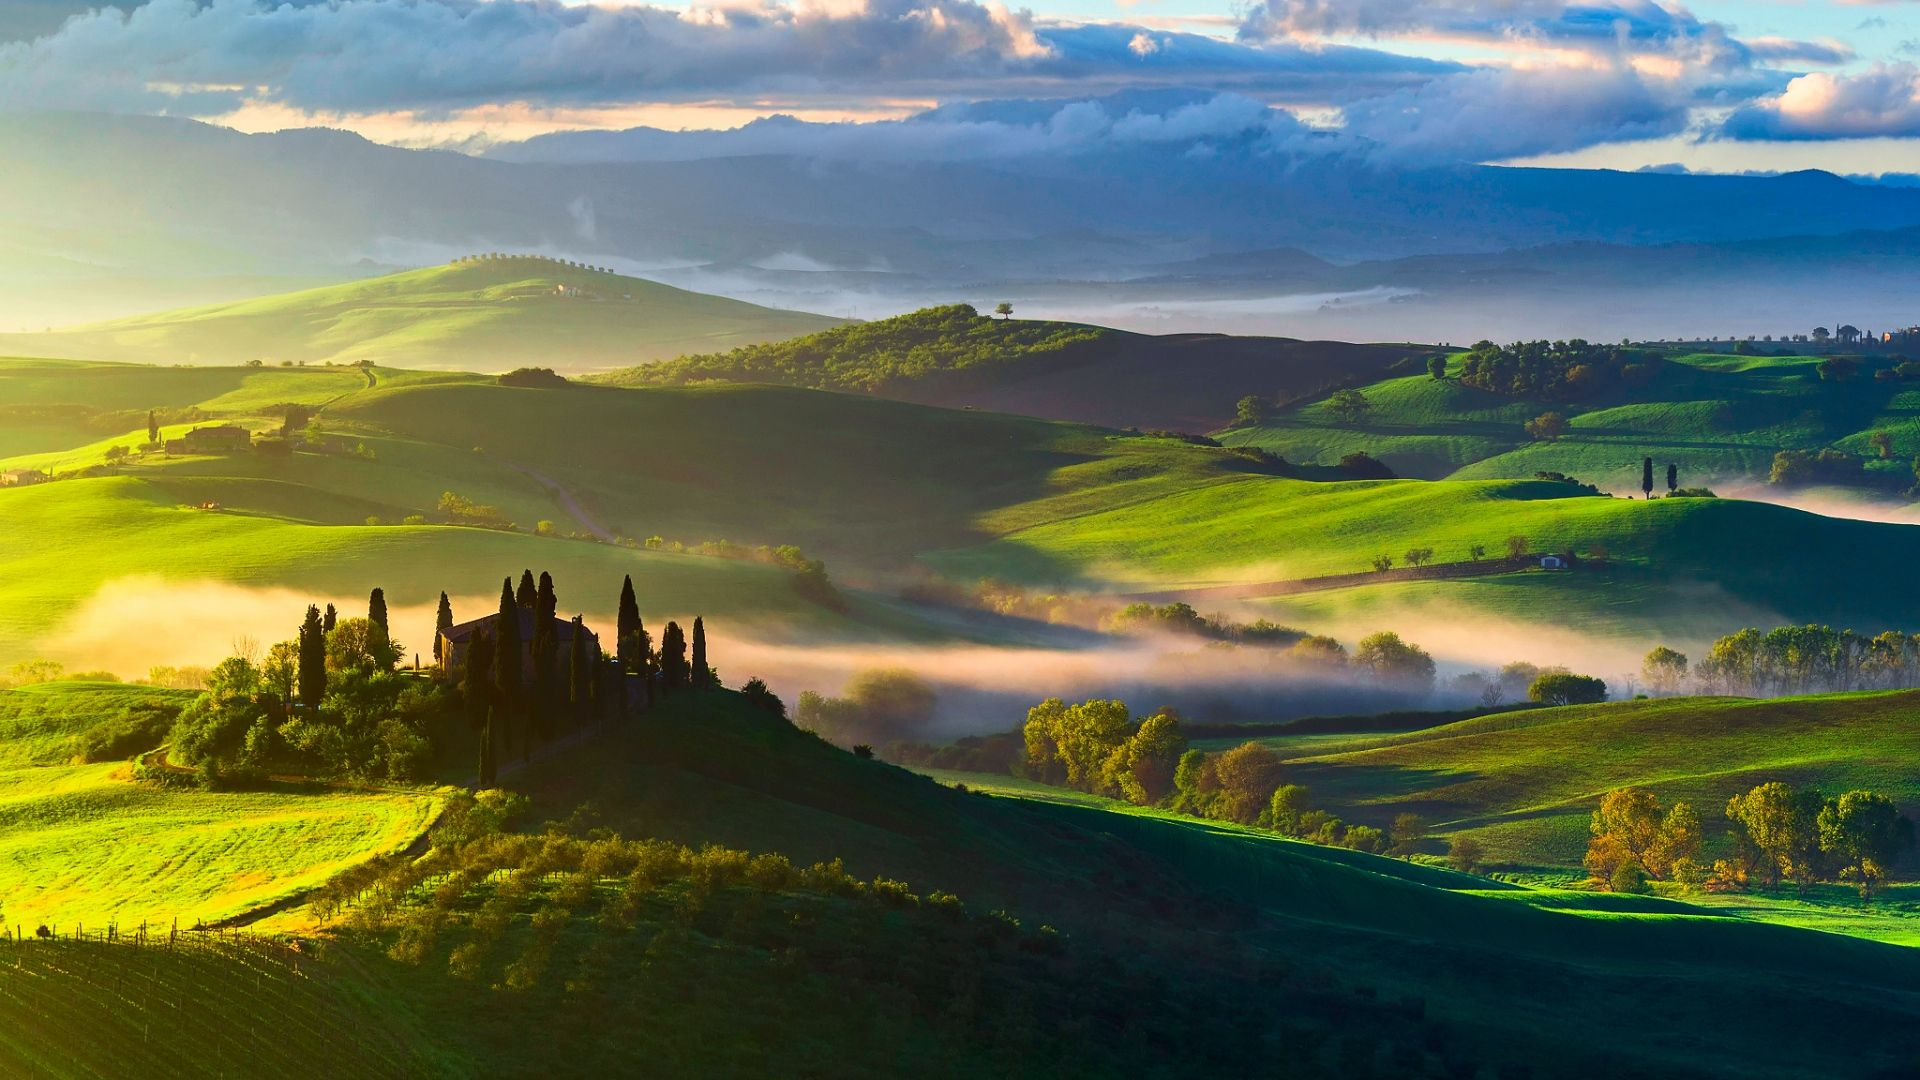 Full Hd 1080p Italy Wallpapers Hd Desktop Backgrounds 1920x1080 Landscape Wallpaper Italy Landscape Nature Wallpaper